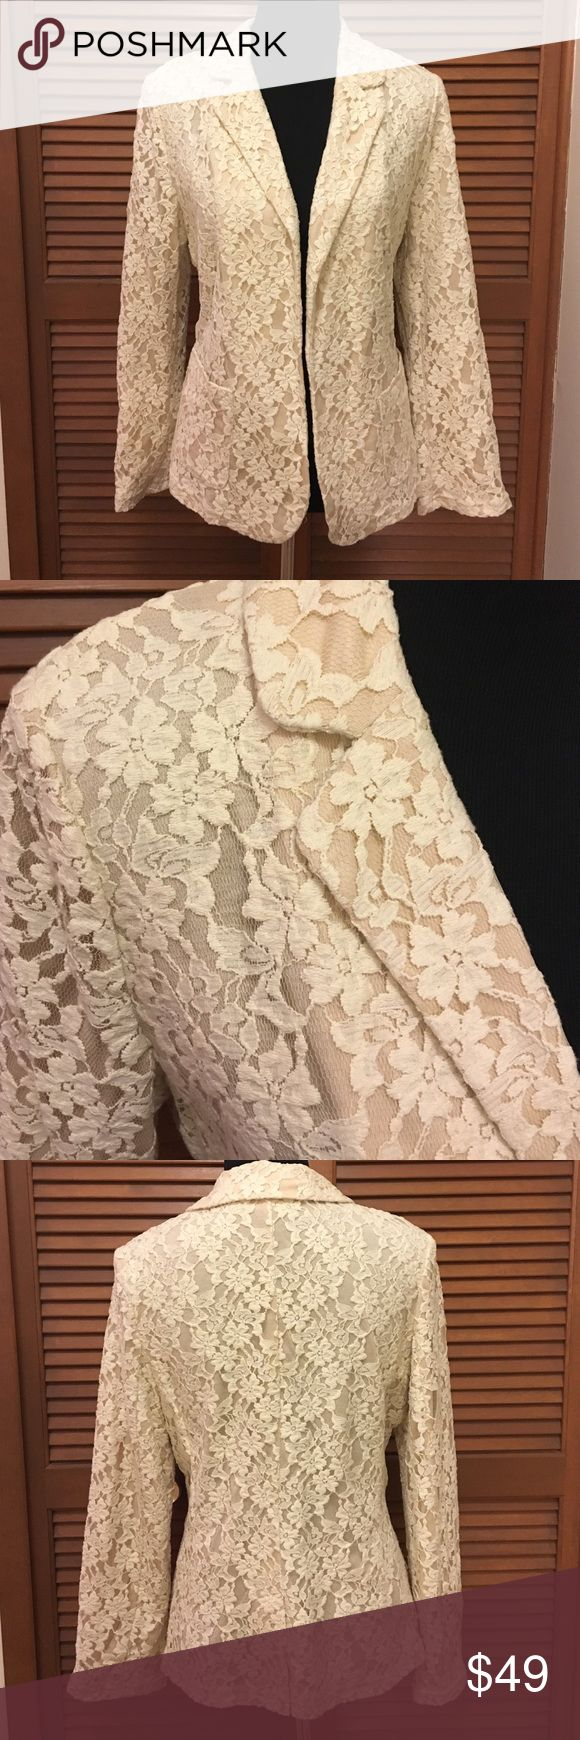 Chico's lace blazer jacket L size 2 cream beige Long sleeve lace blazer jacket from Chico's. Chicos size 2. Lining is beige with cream lace on top. Shell of jacket is 83% cotton 17% nylon. Lining is 100% Modal. Bundle two or more items from my closet and save! Chico's Jackets & Coats Blazers